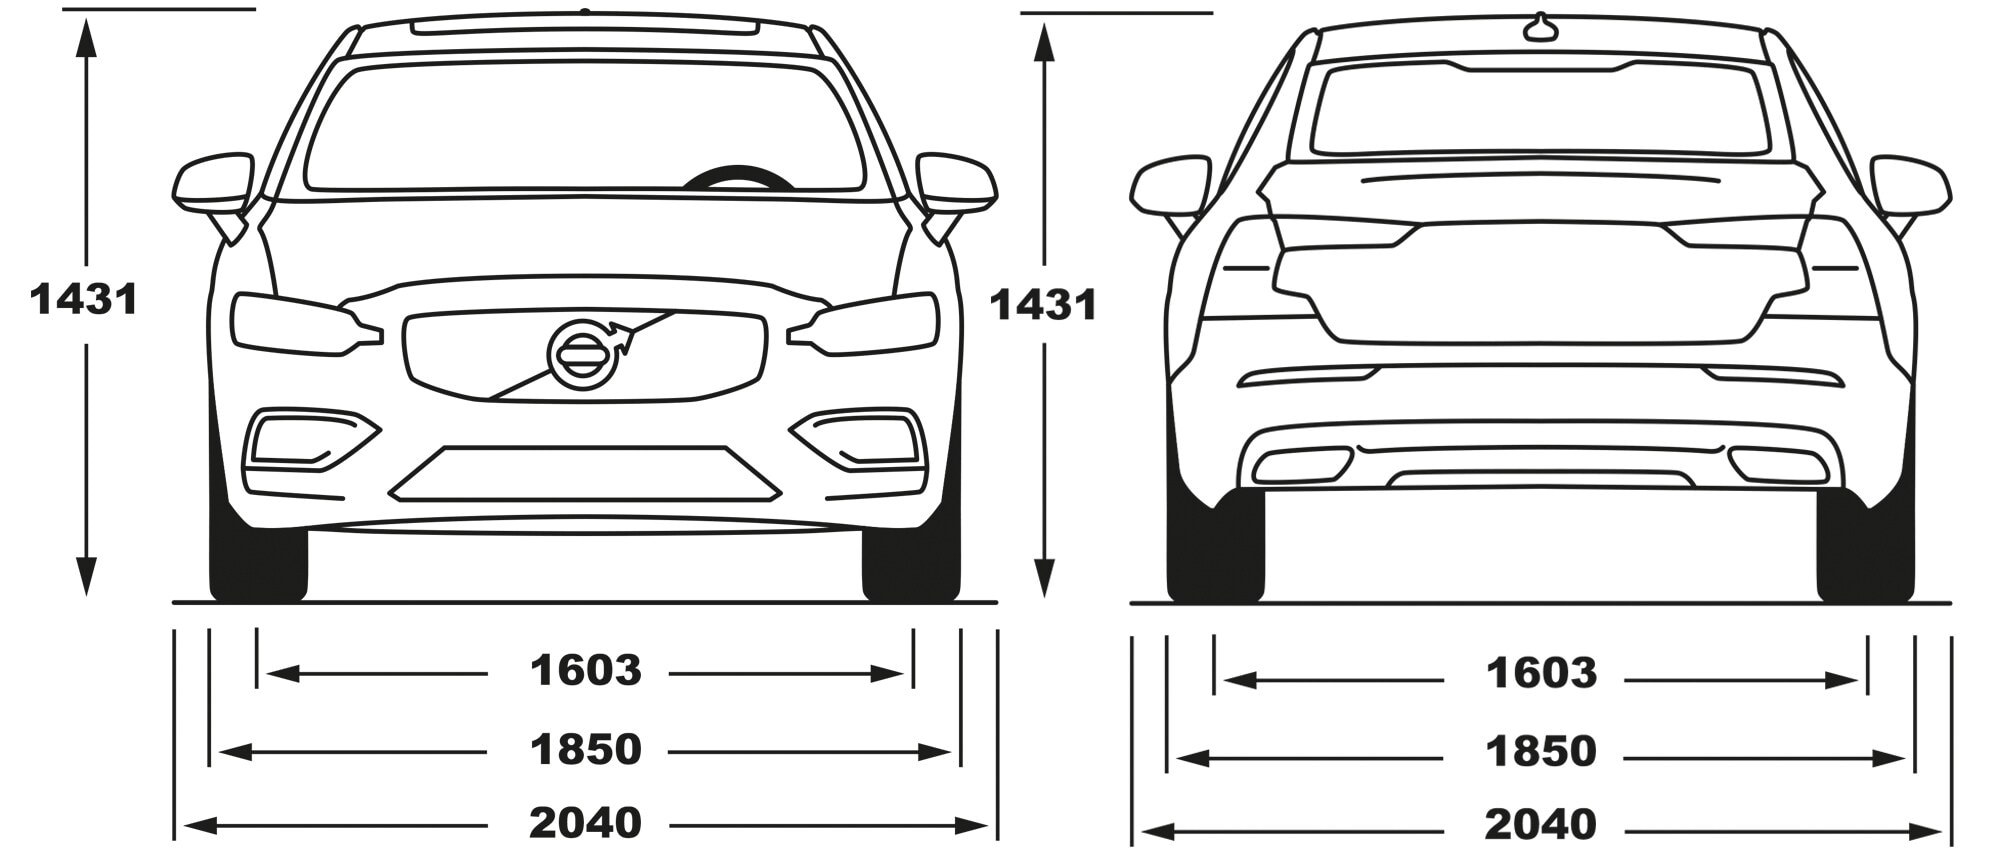 Volvo S60 front and rear dimensions